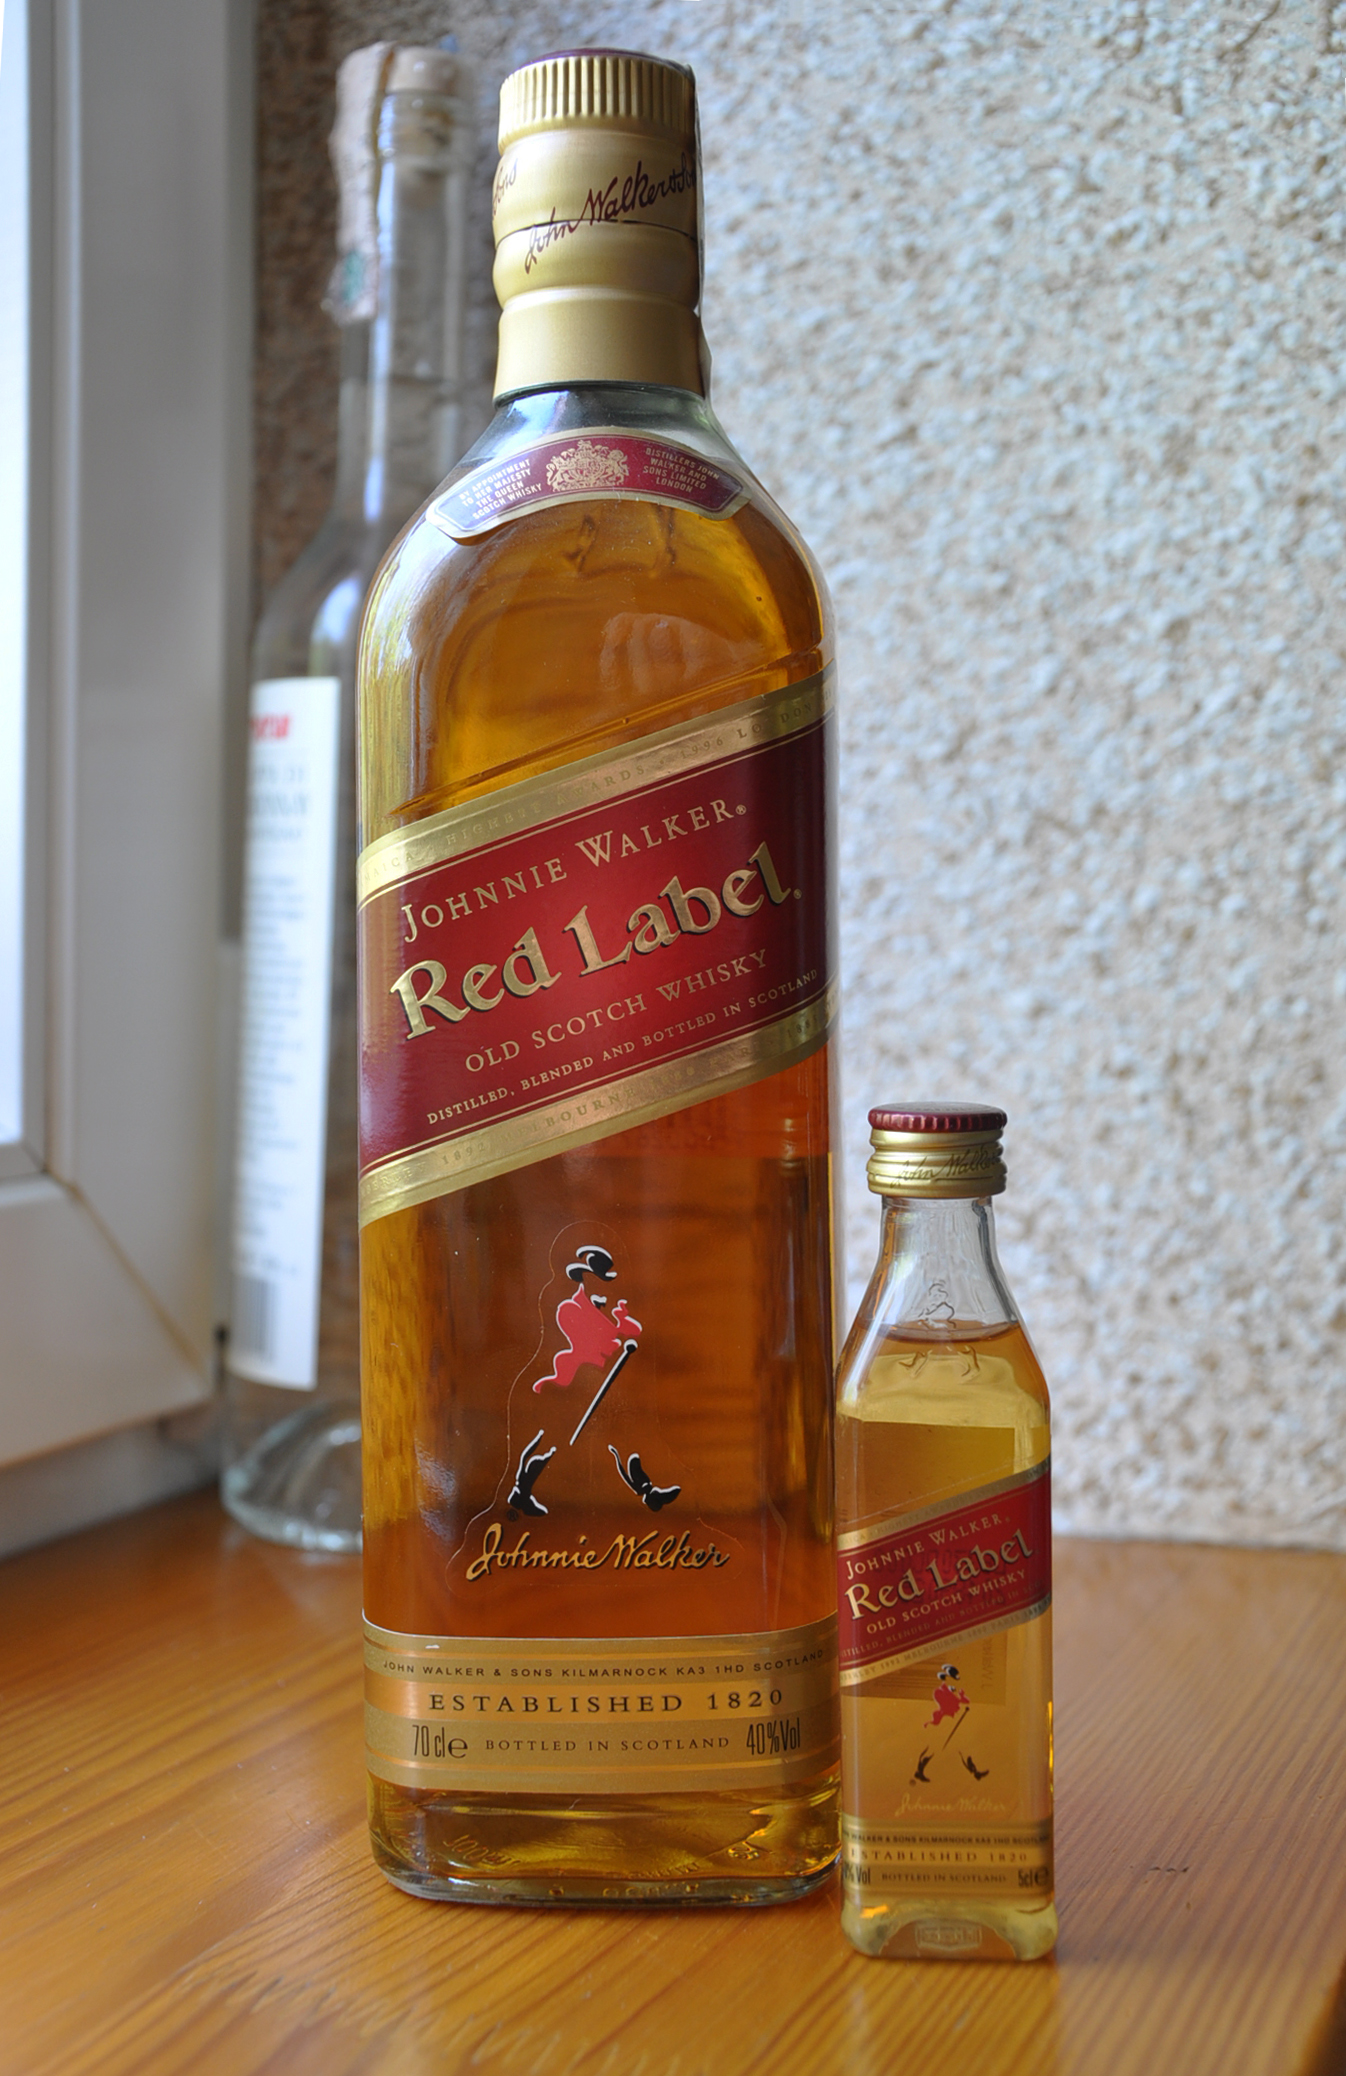 This is an image of Old Fashioned Black Label Red Label Difference